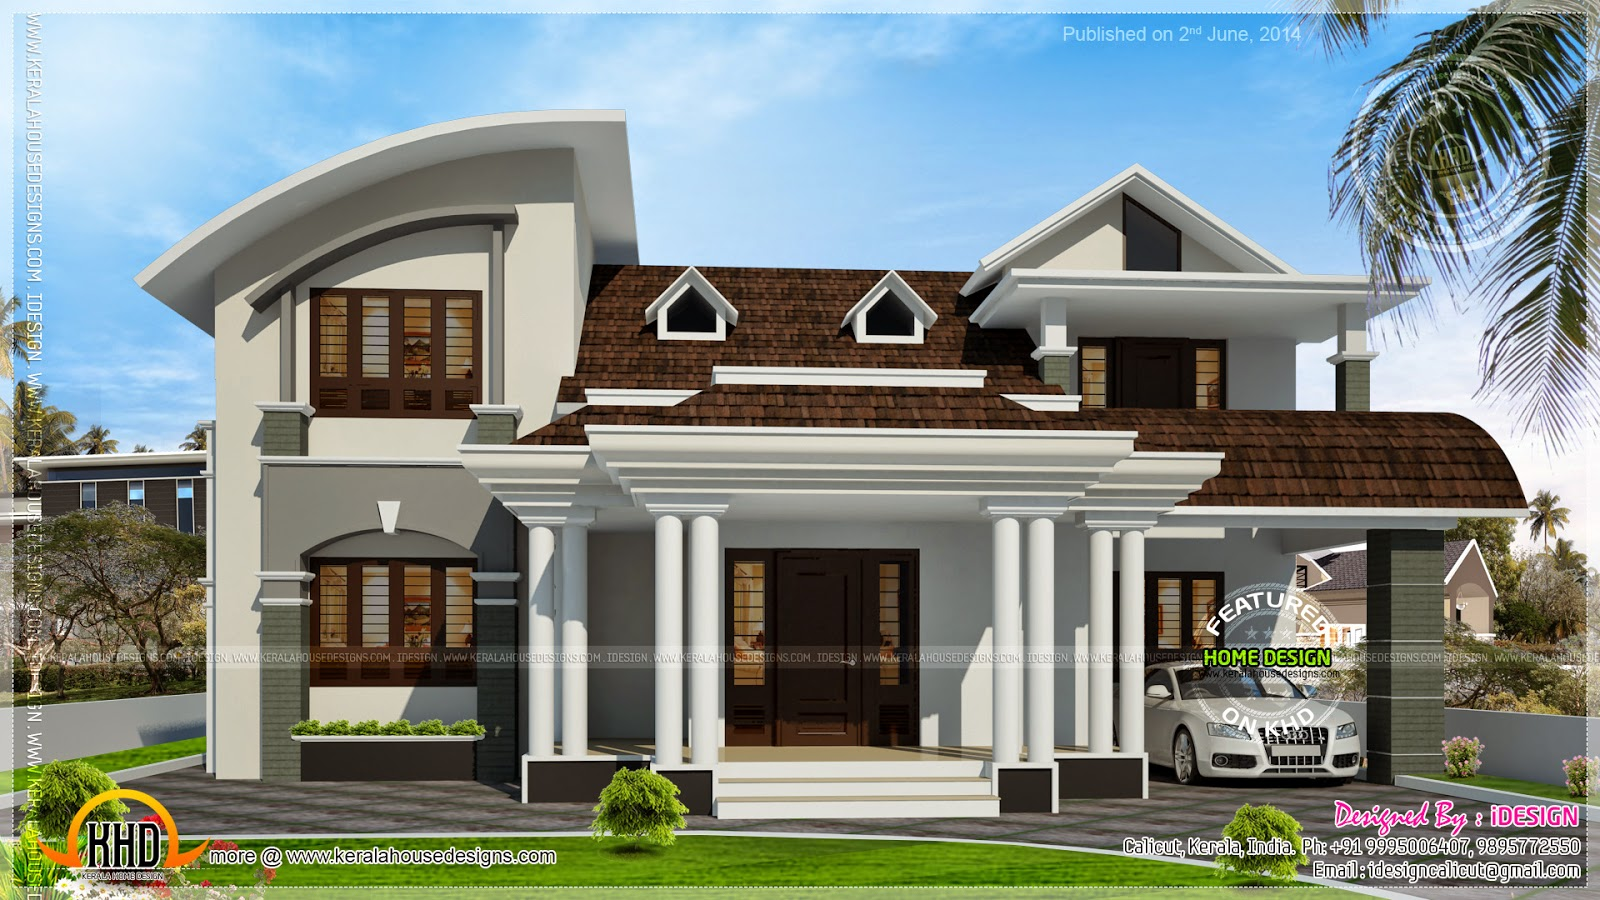 House with beautiful dormer windows kerala home design for Window design home